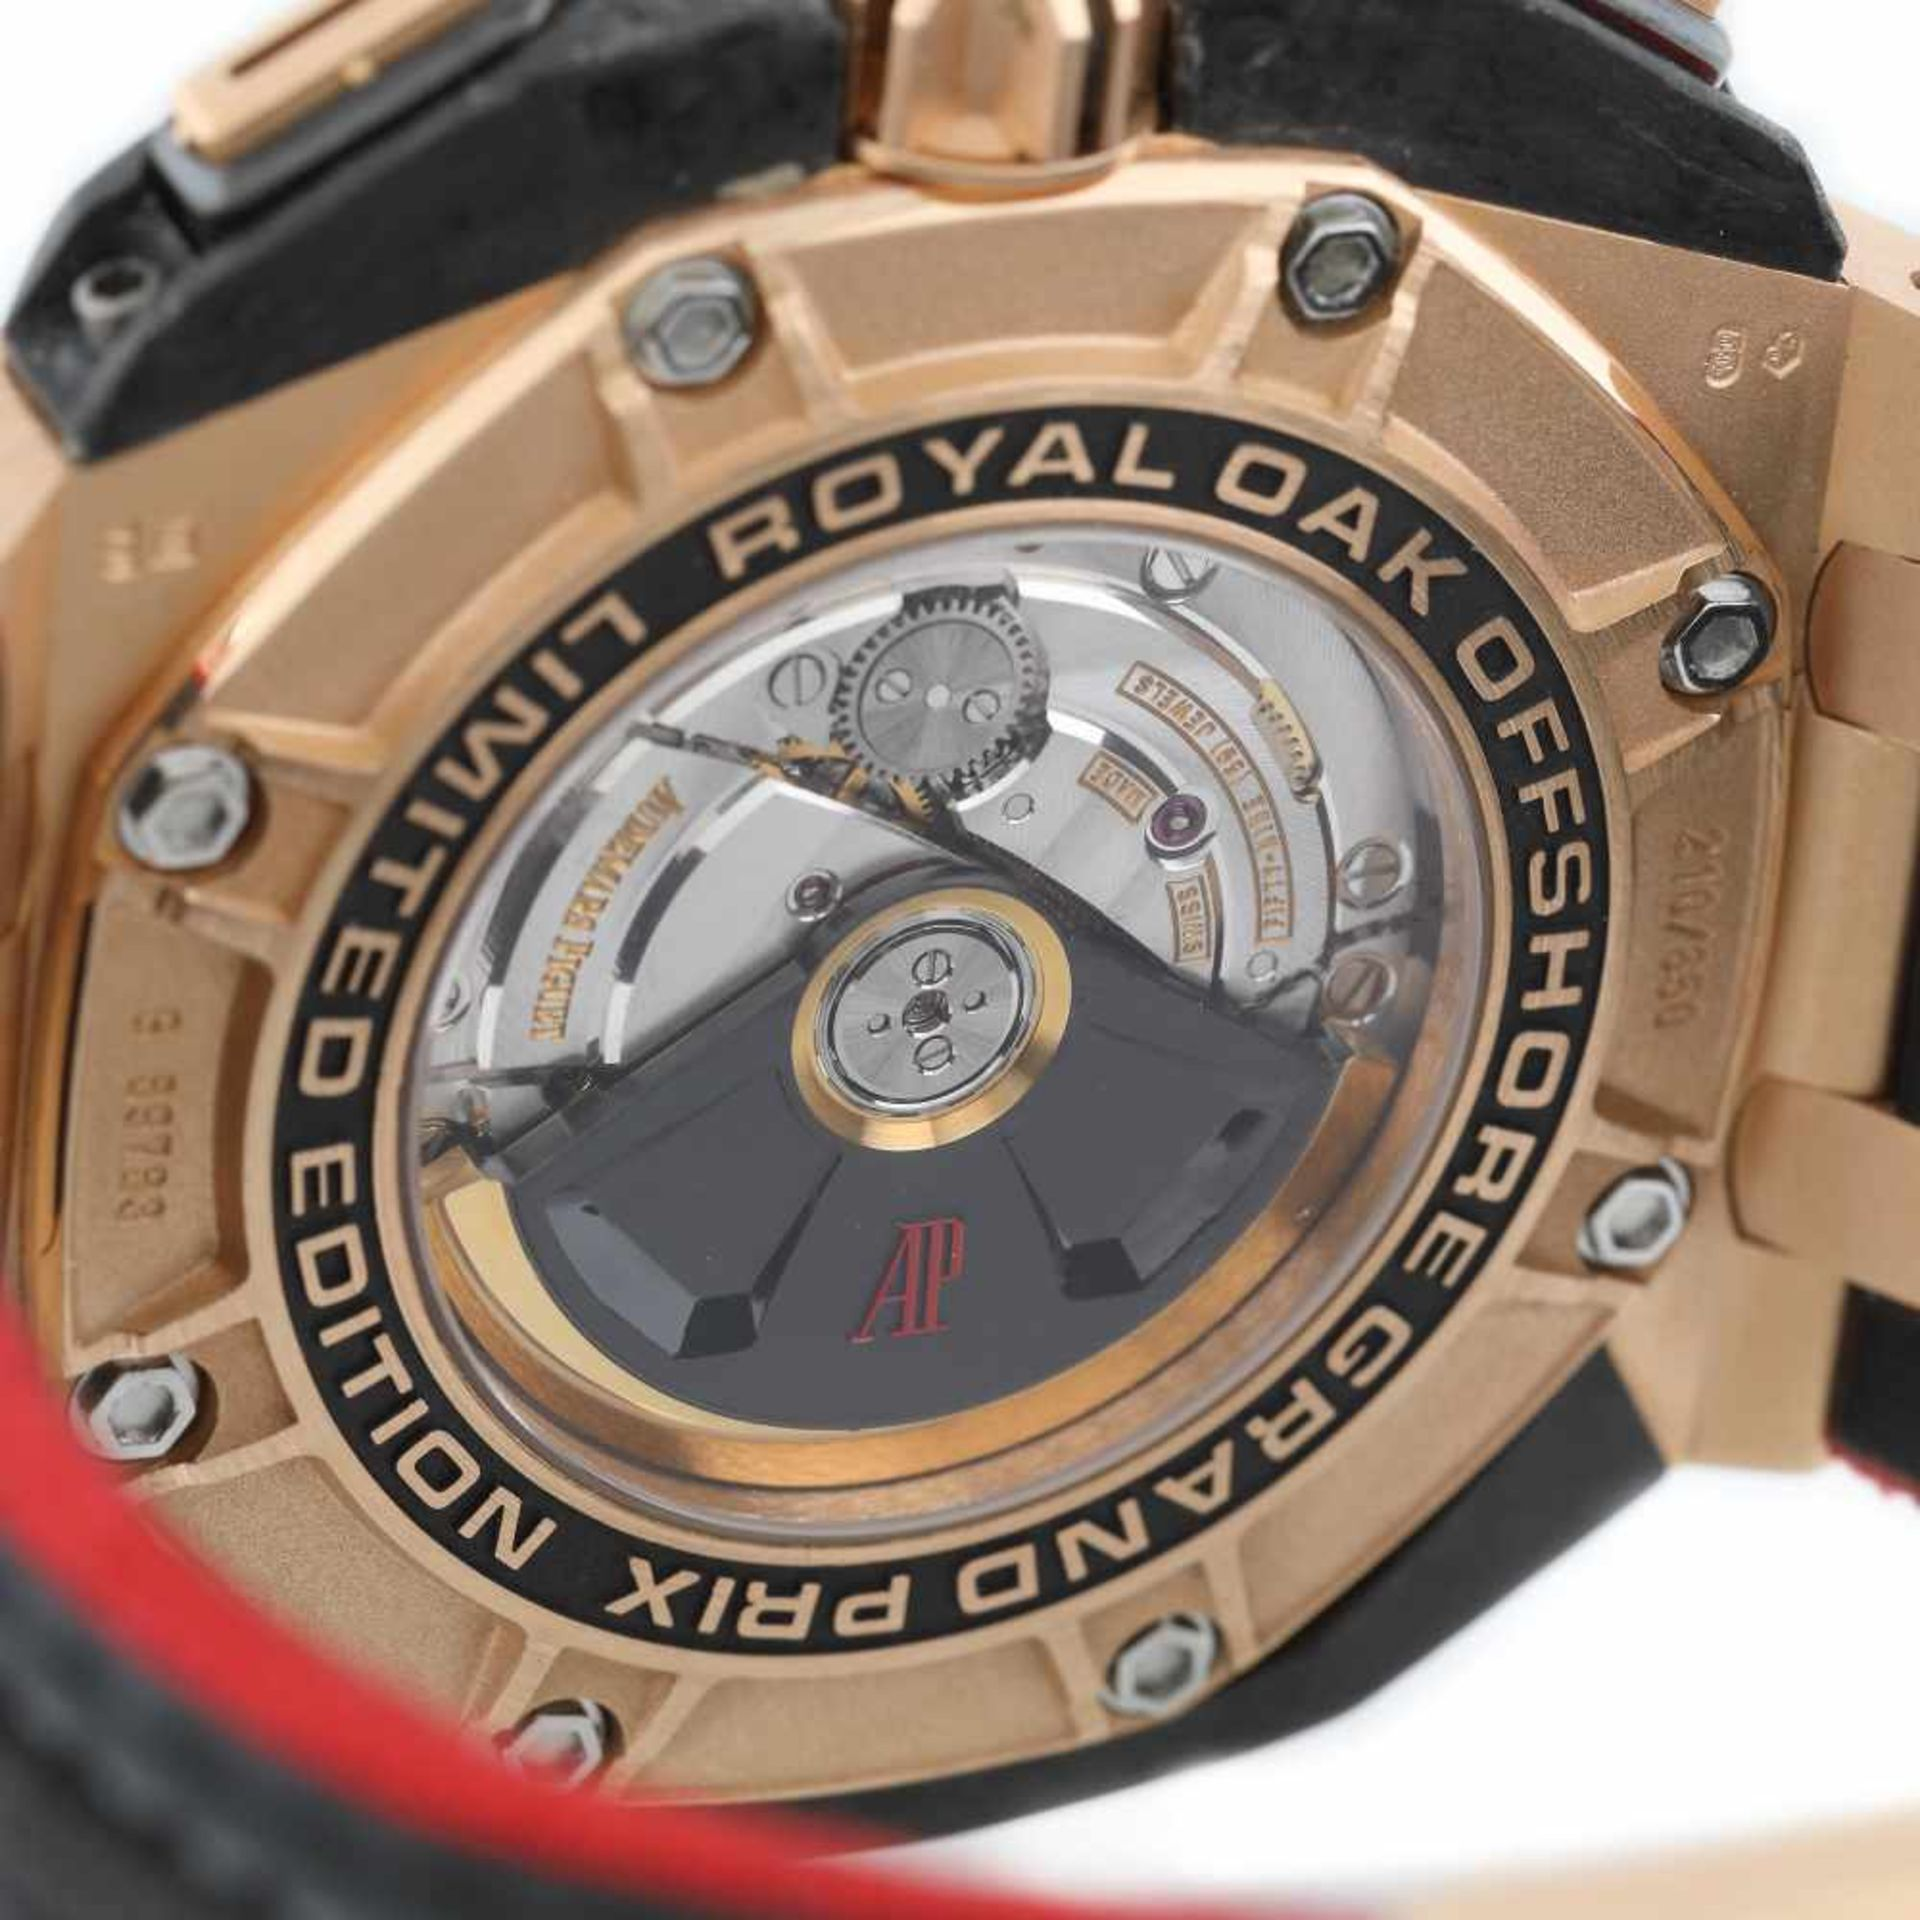 Audemars Piguet Royal Oak Offshore Grand Prix wristwatch, men, 210/650 - Bild 4 aus 4